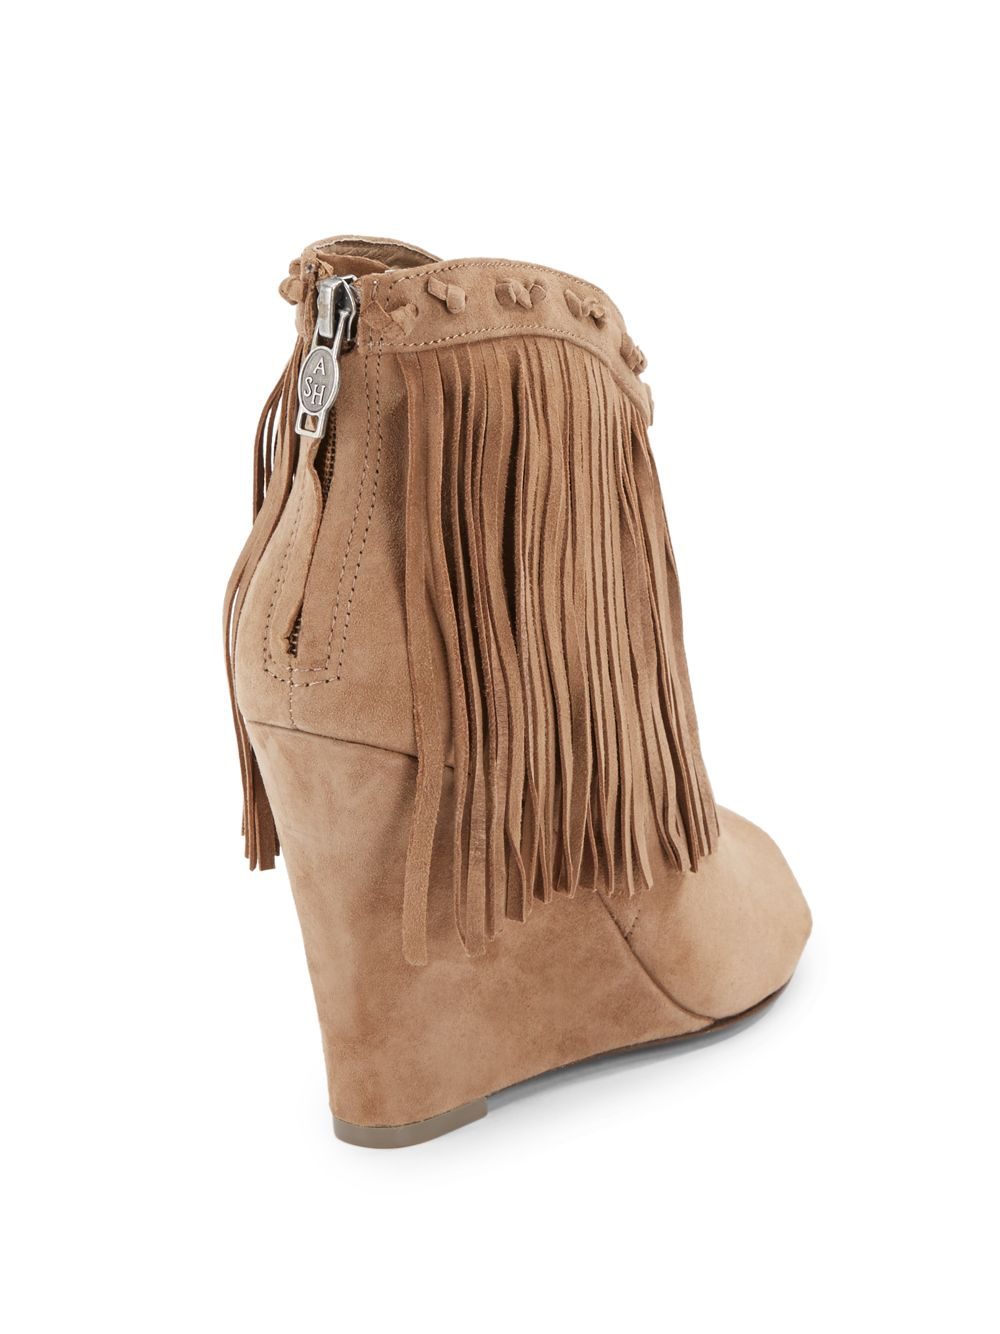 Ash Janis Fringe Nubuck Wedge Ankle Boots in Natural   Lyst